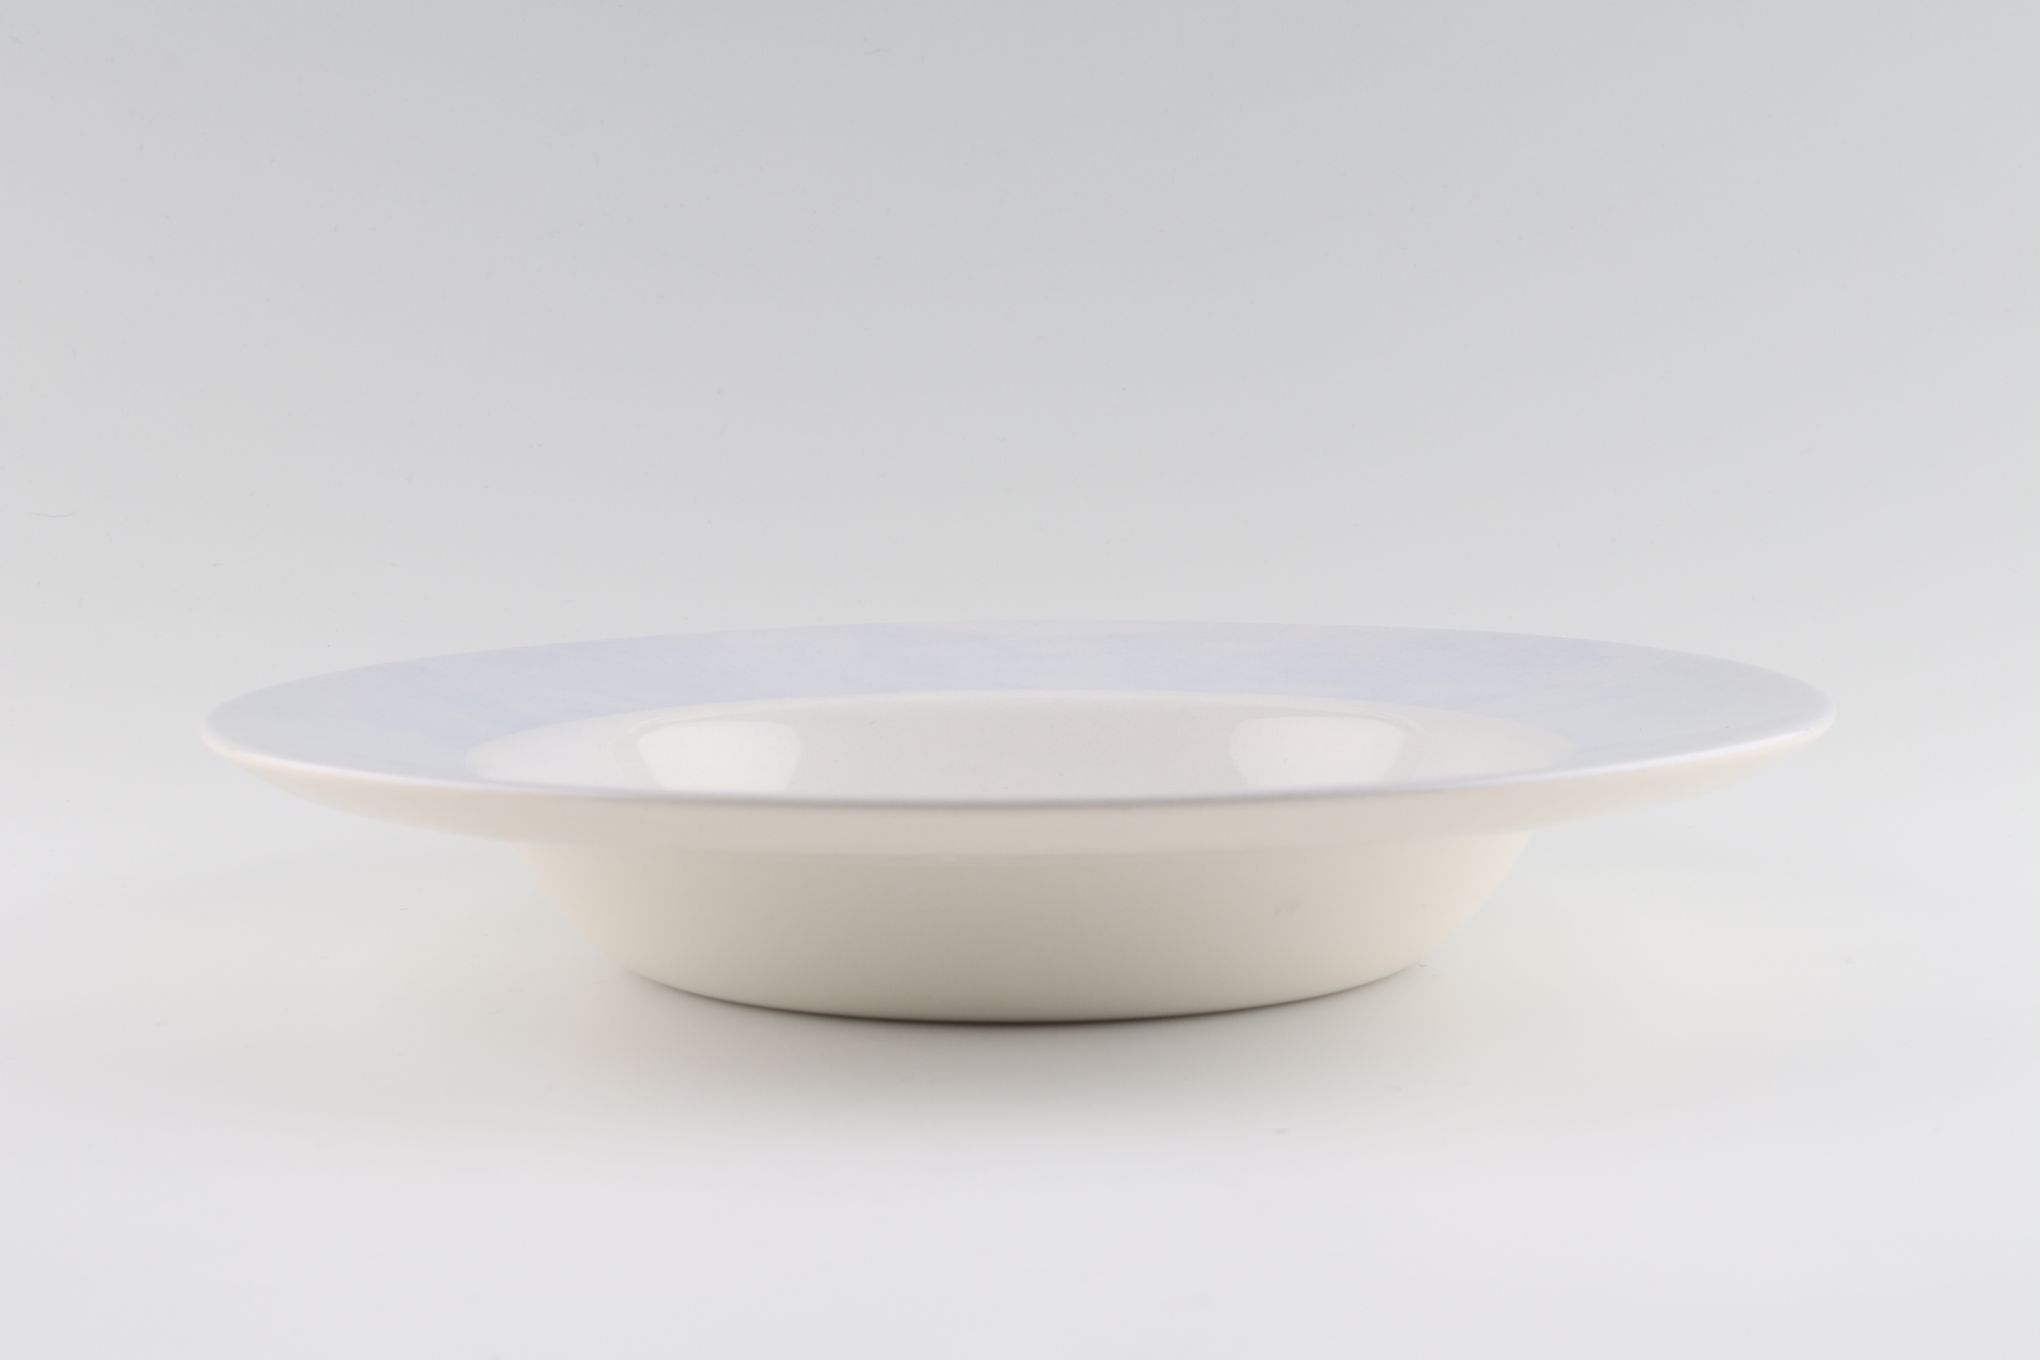 """BHS Simplicity Rimmed Bowl 9 3/4"""" thumb 1"""